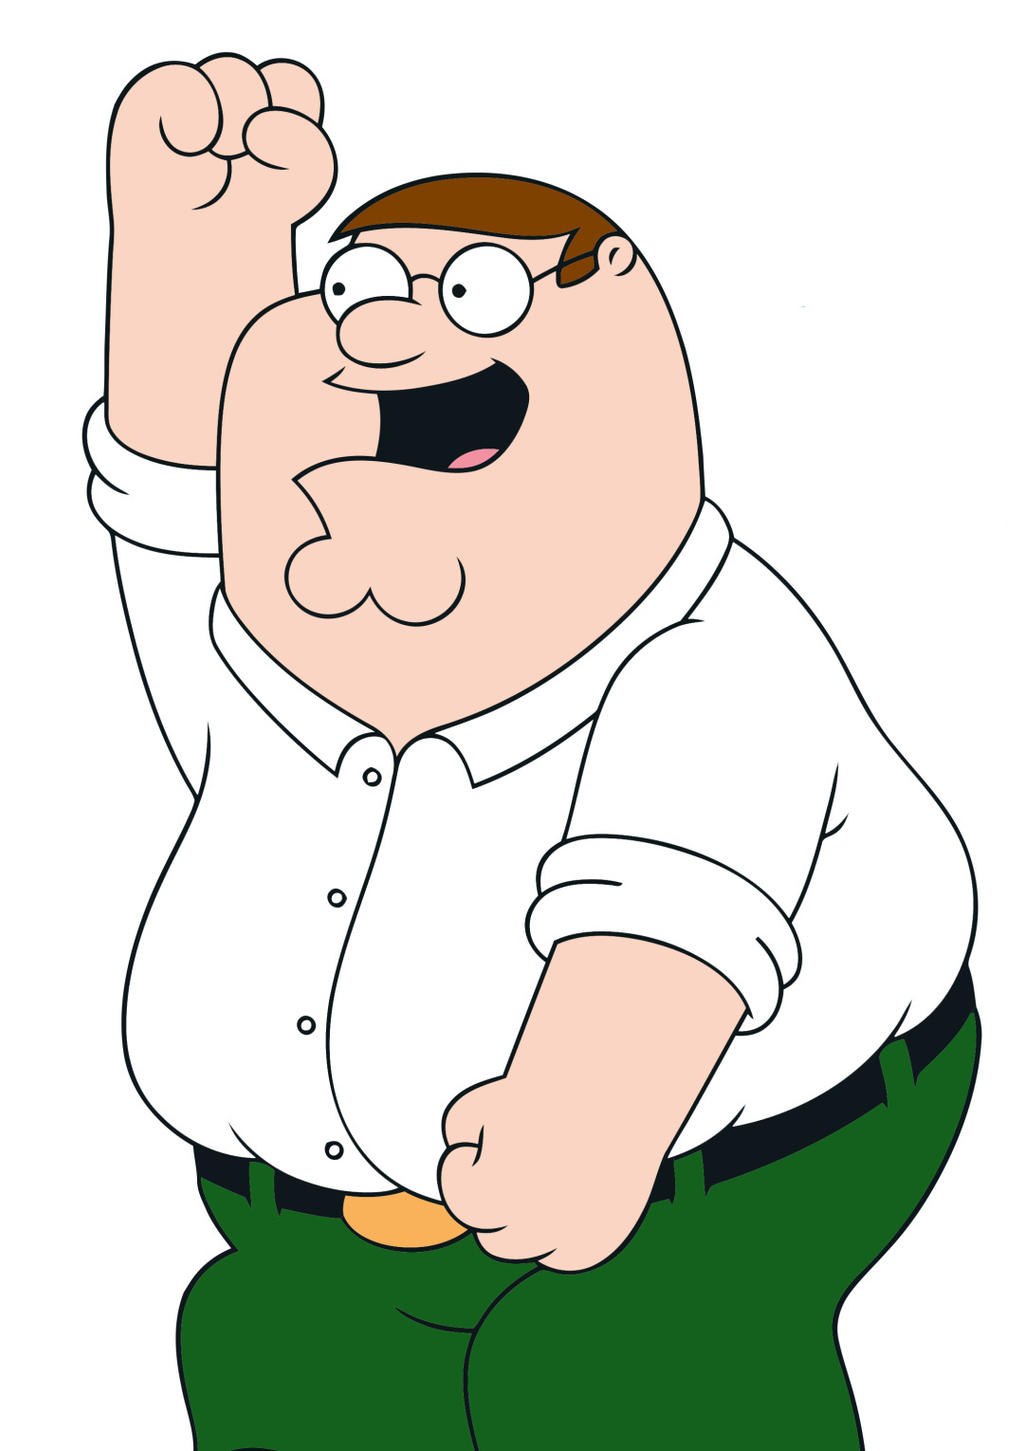 peter_griffin__family_guy___7_by_frasier